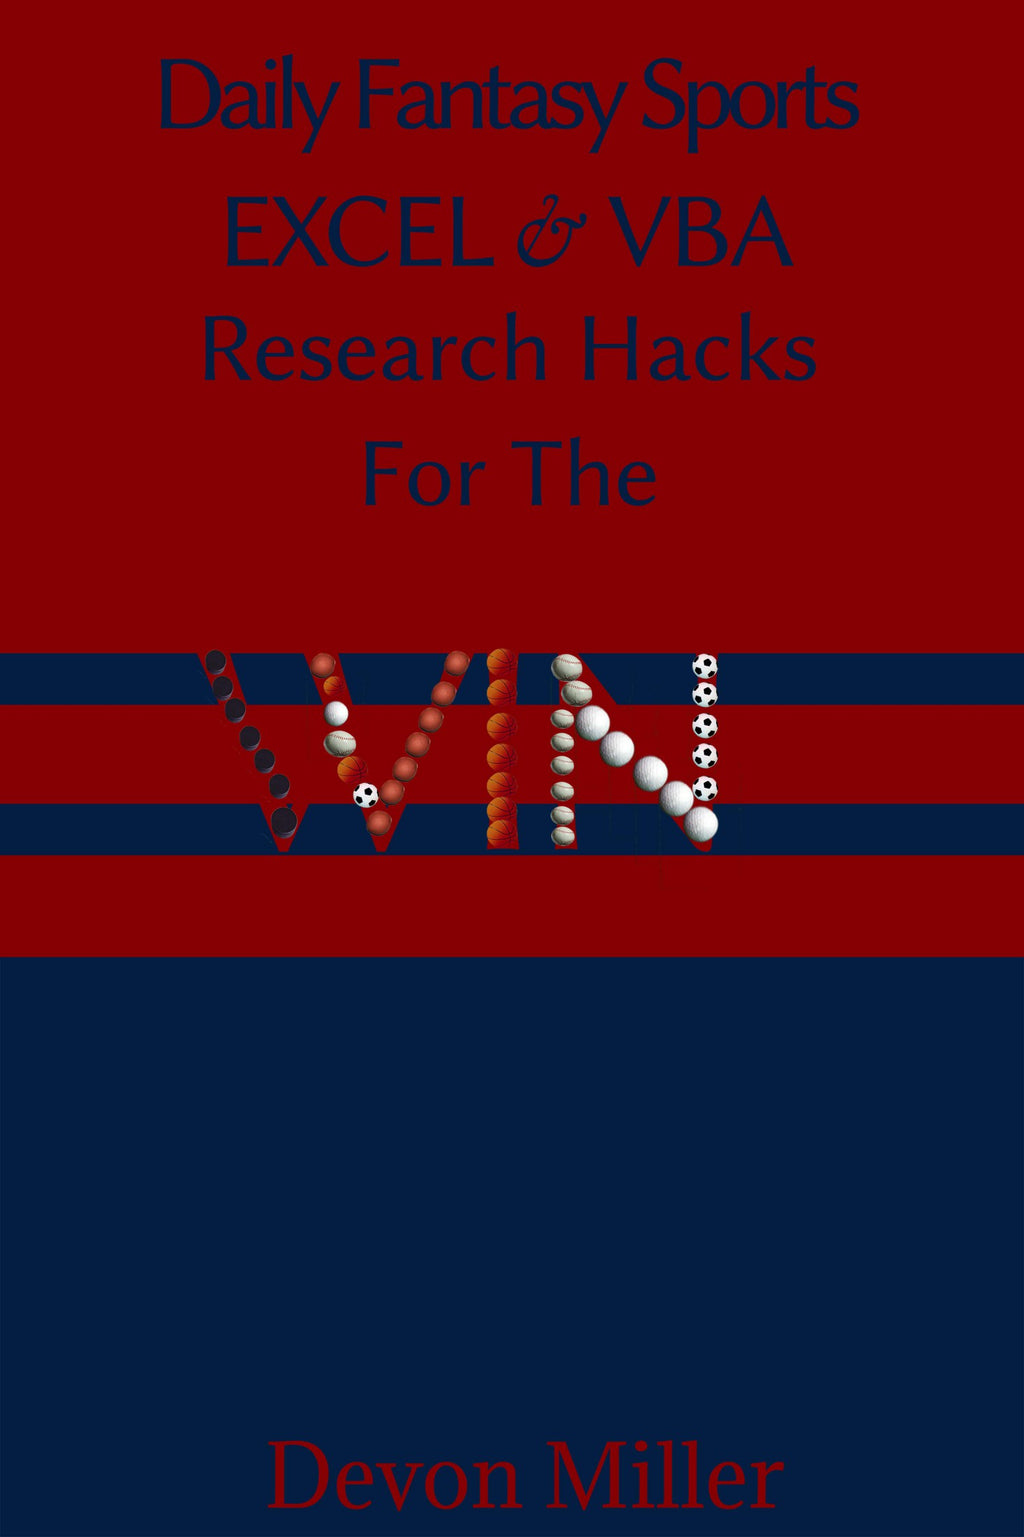 Daily Fantasy Sports Excel & VBA Research Hacks For The Win